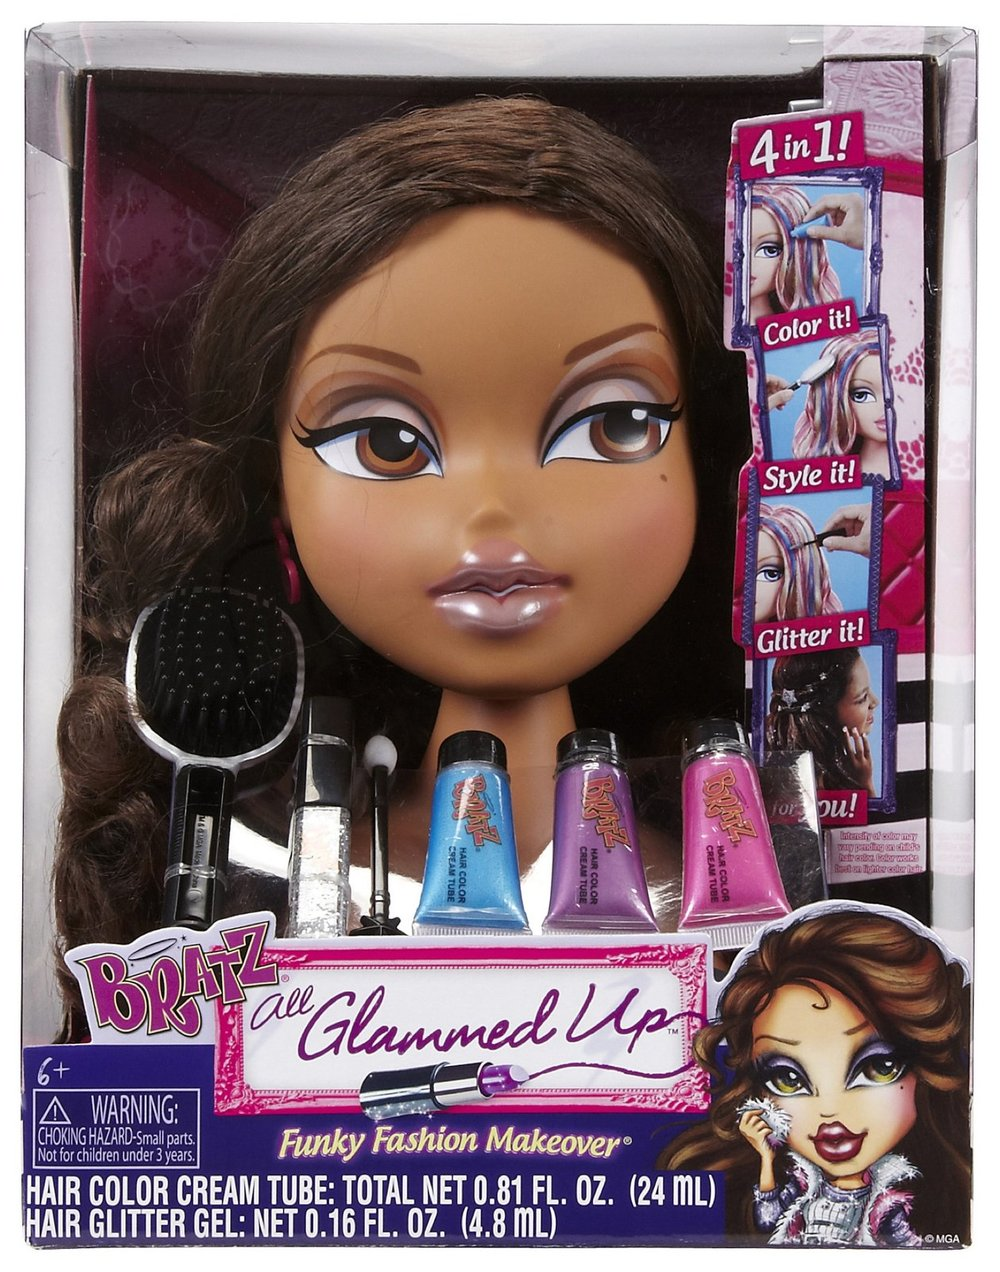 All Glammed Up (First Edition) Funky Fashion Makeover Yasmin V1